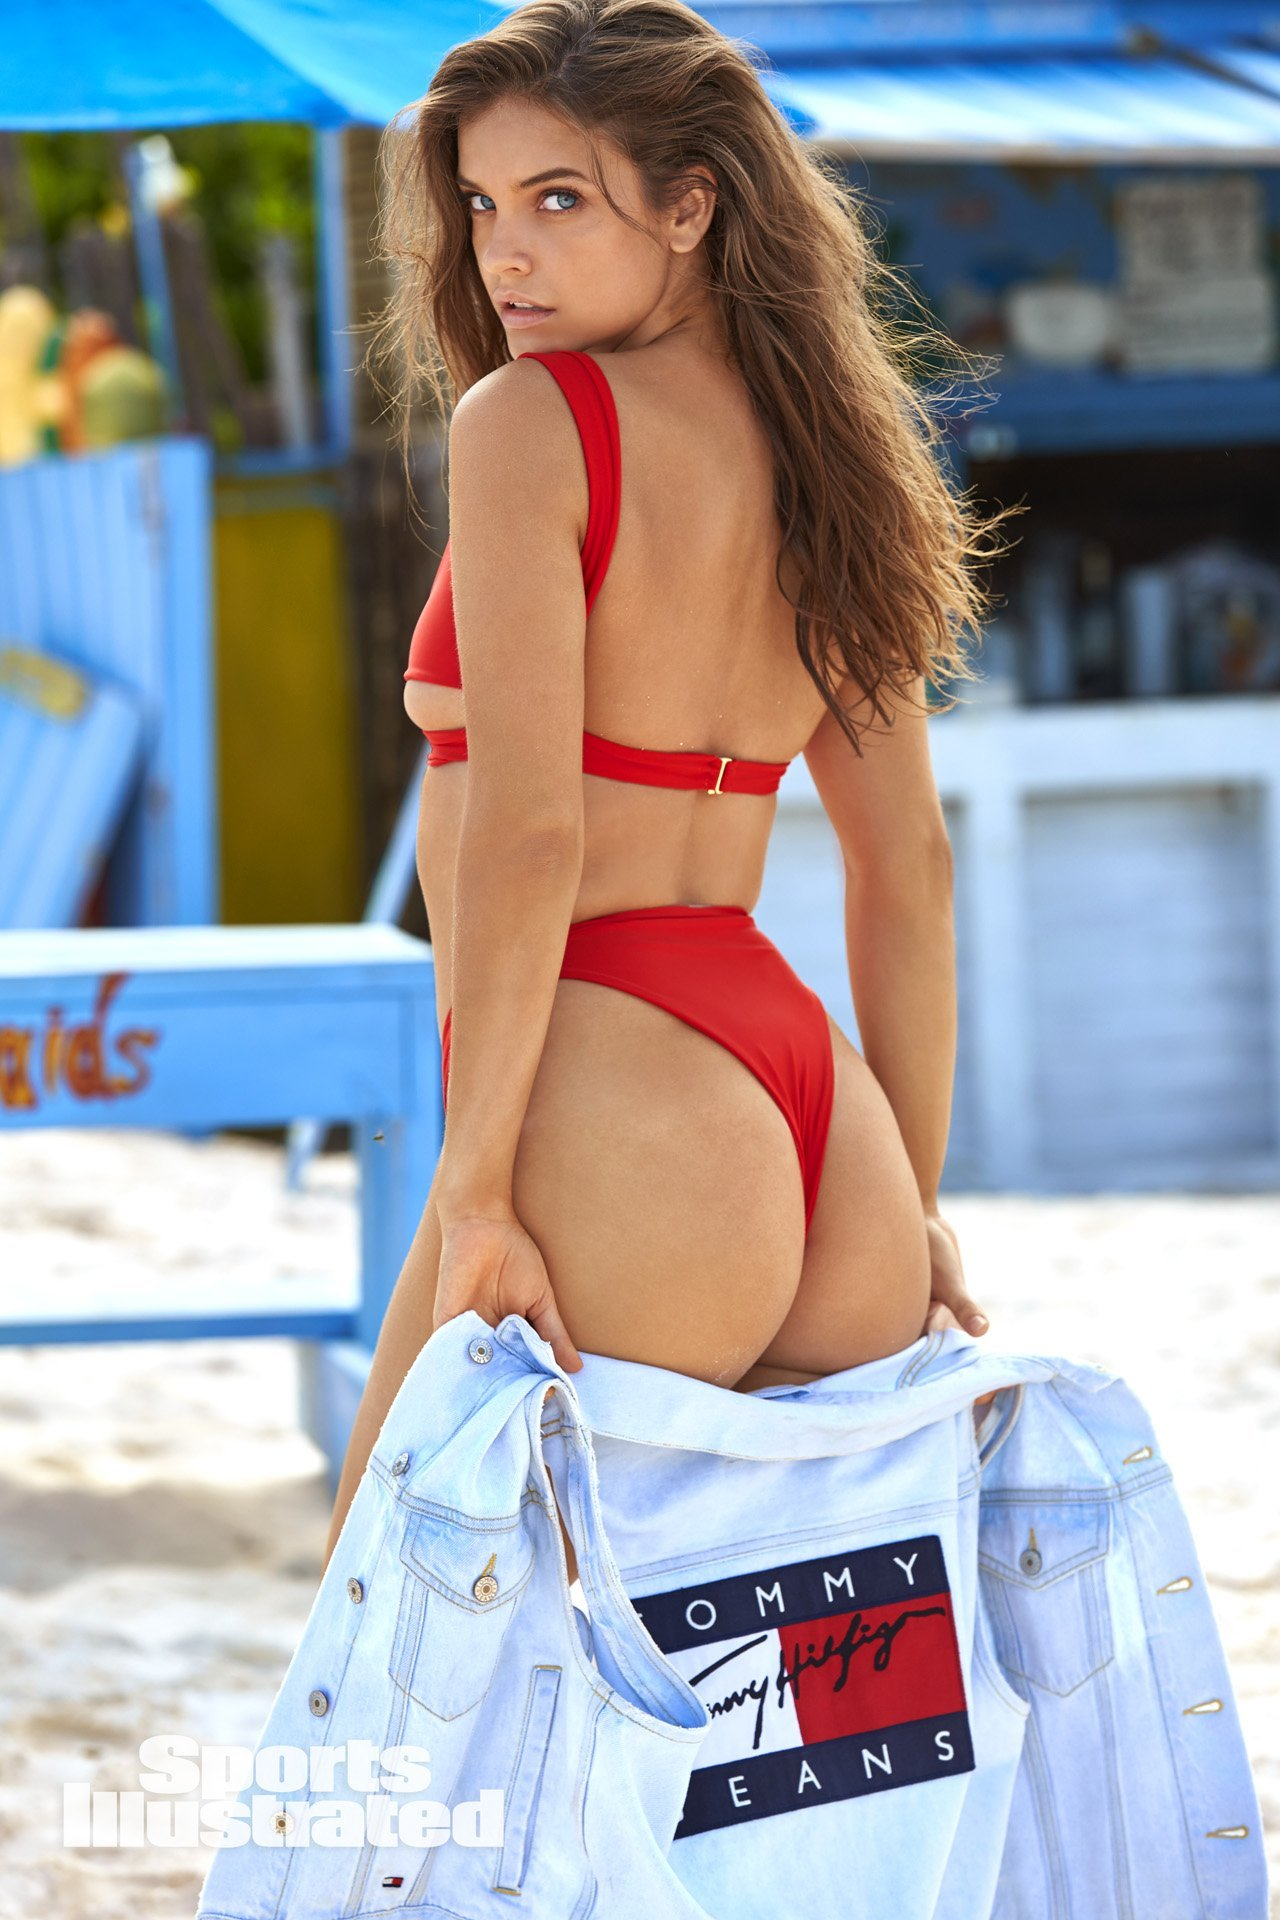 Authoritative Sexy sports illustrated butt consider